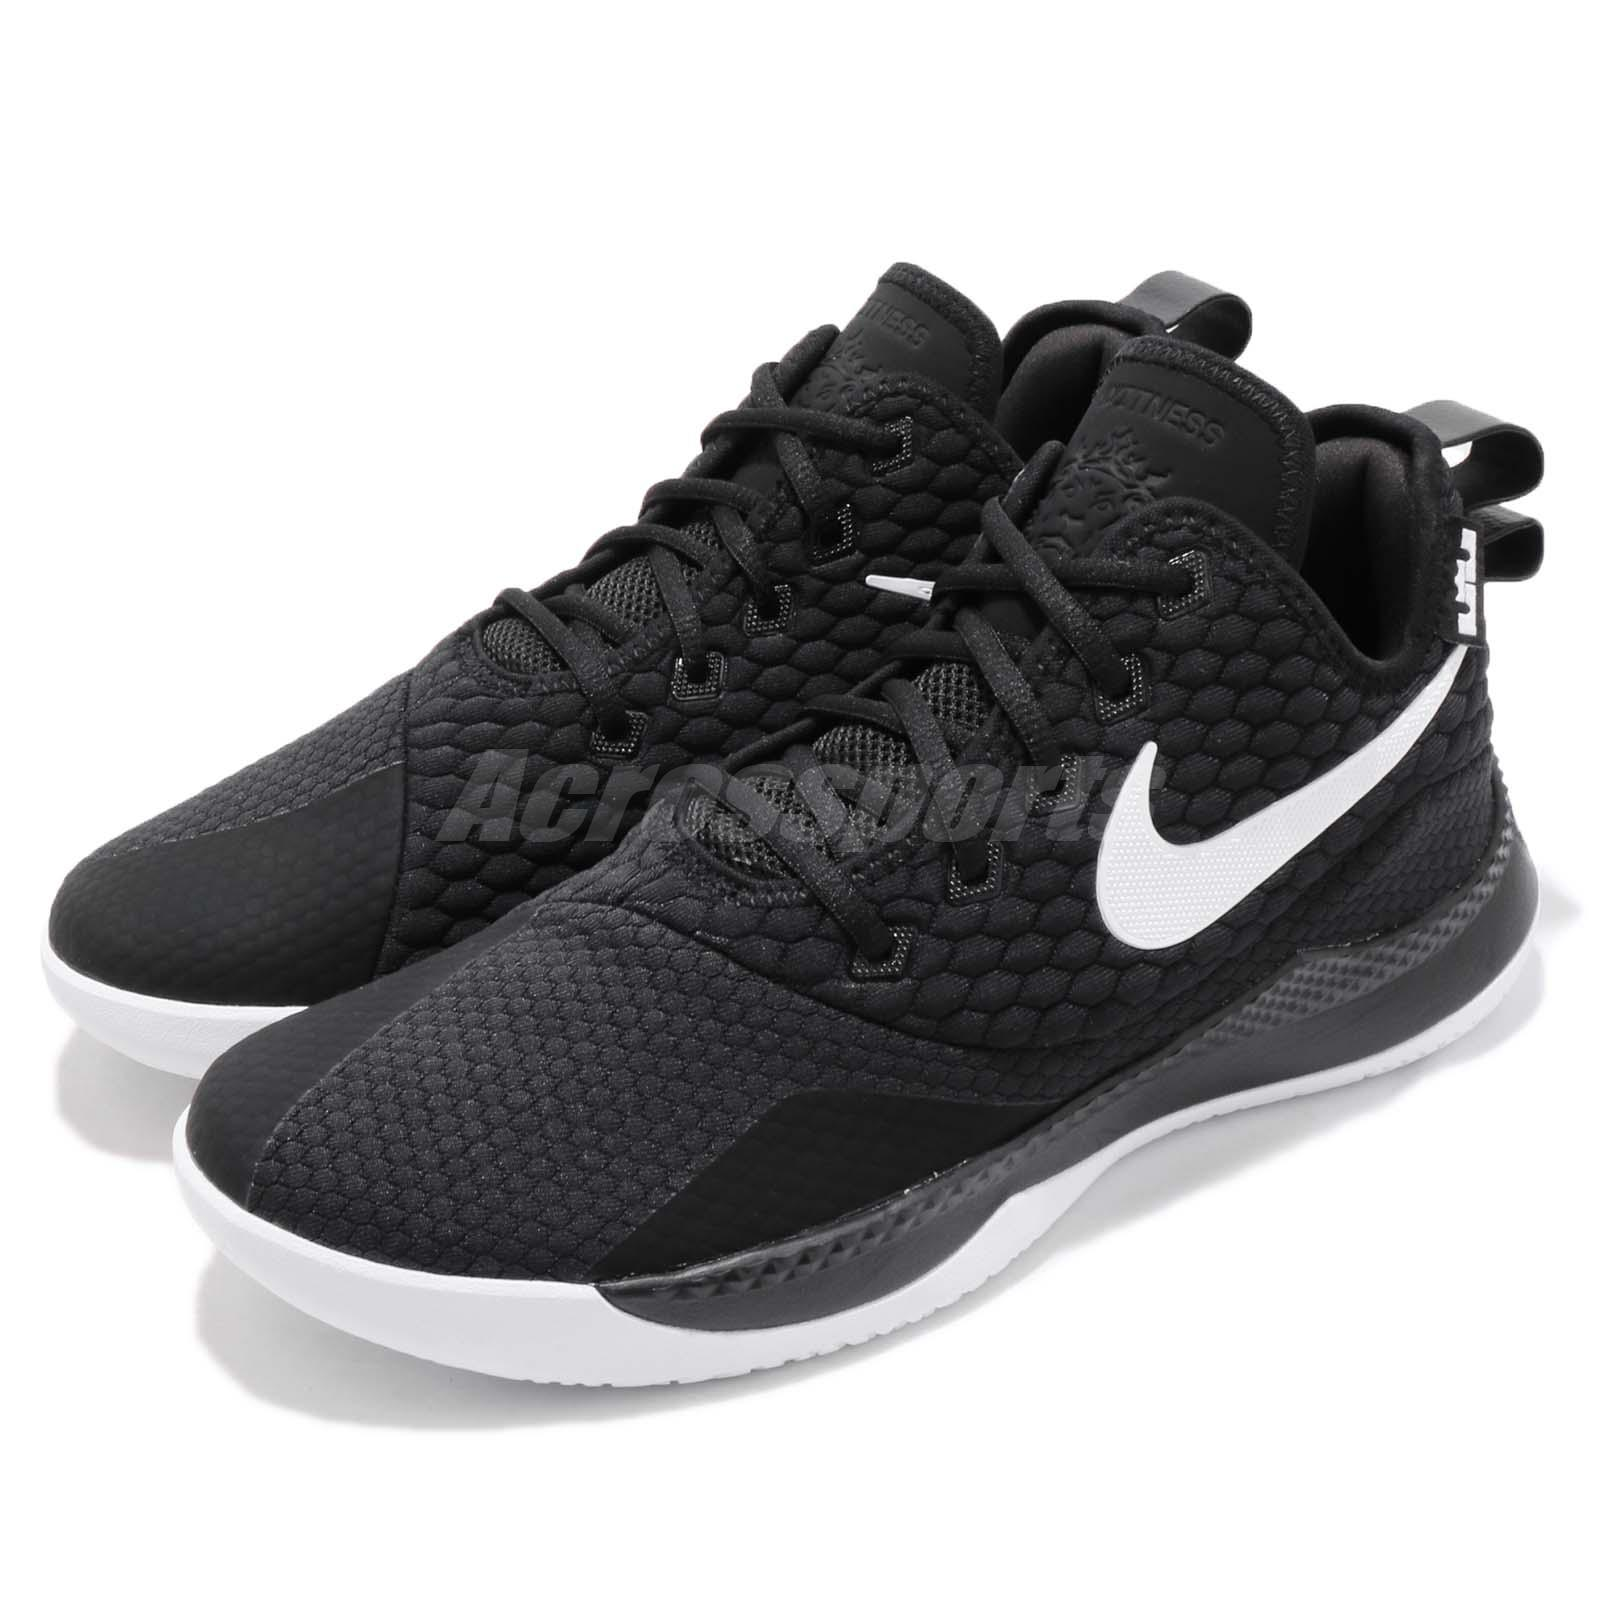 new concept 91929 f83cd Details about Nike LeBron Witness III EP 3 James LBJ Black White Men  Basketball AO4432-001